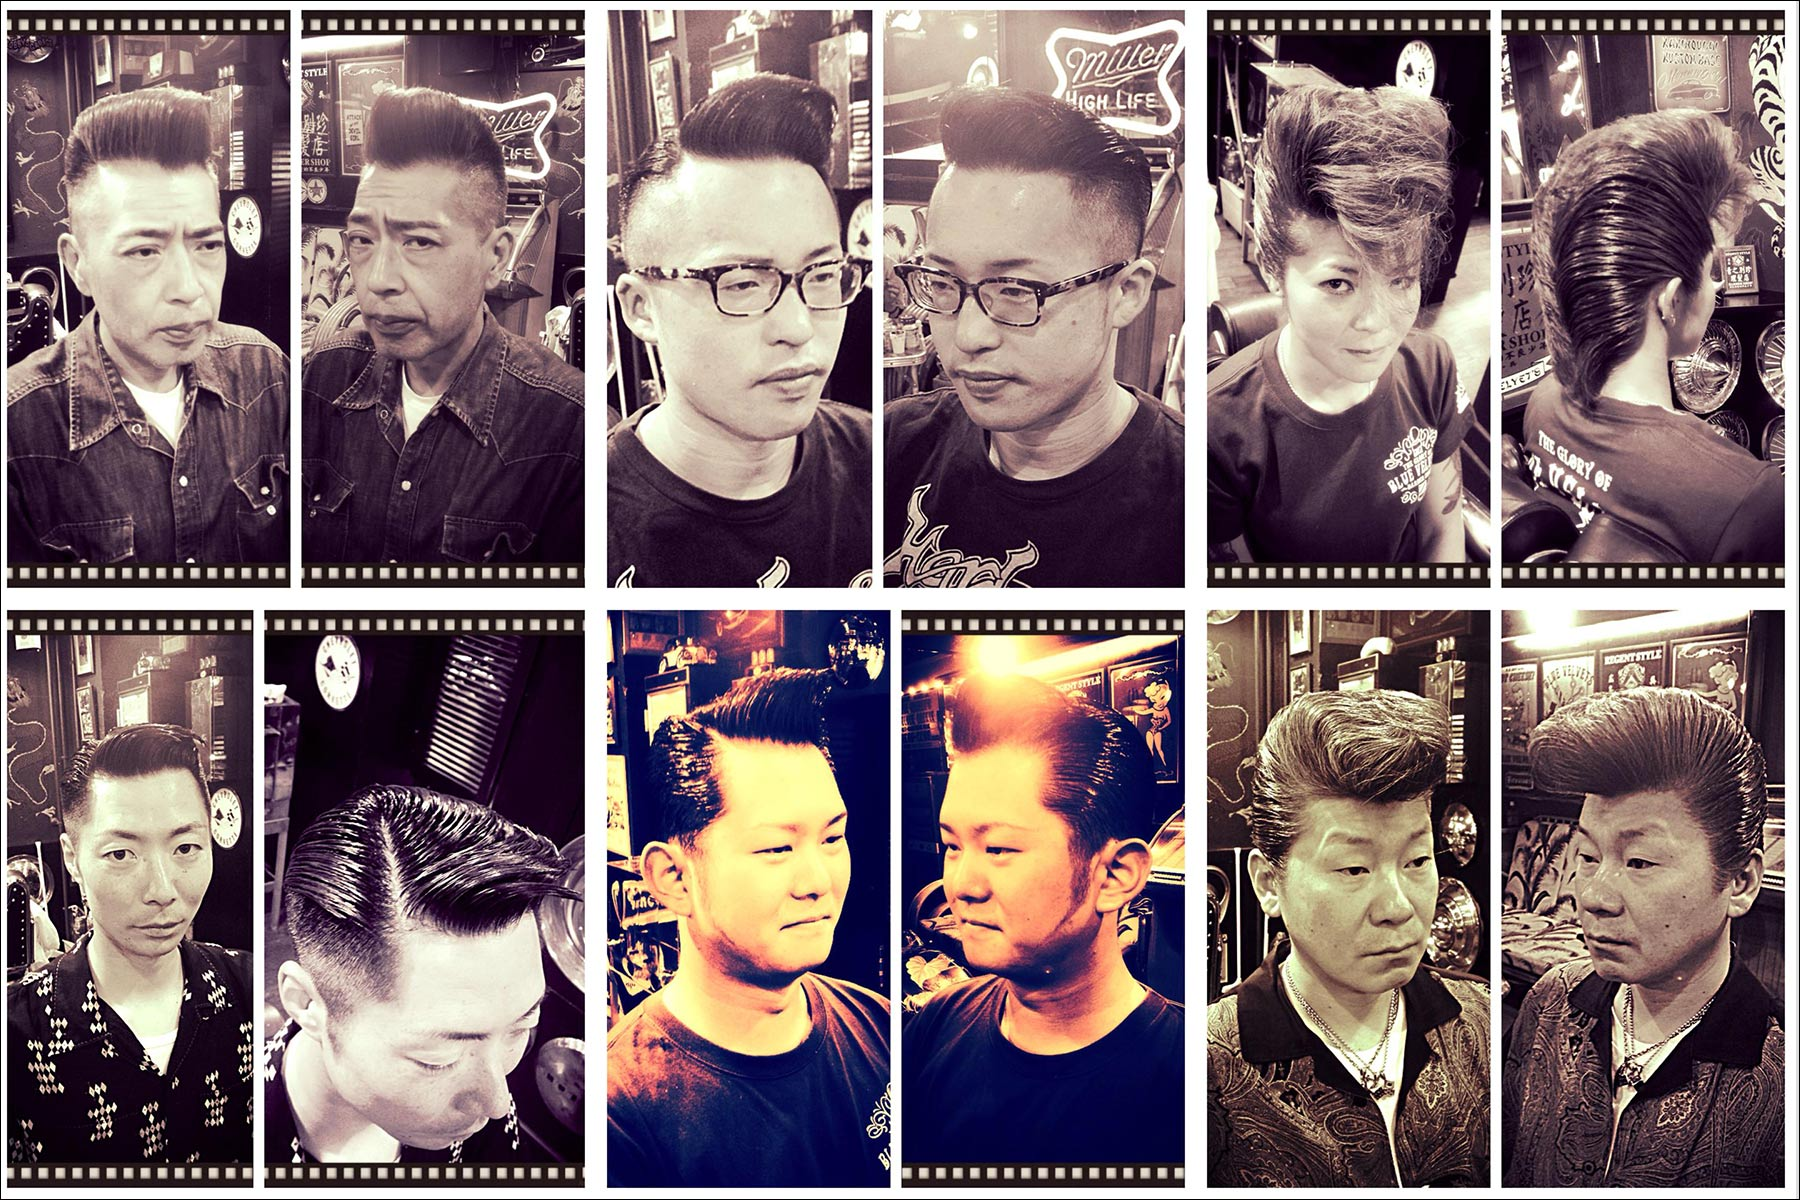 B&W portraits of Japanese customers in perfectly groomed 1950s rockabilly pompadours from Blue Velvet's barber shop. Ponyboy magazine New York.